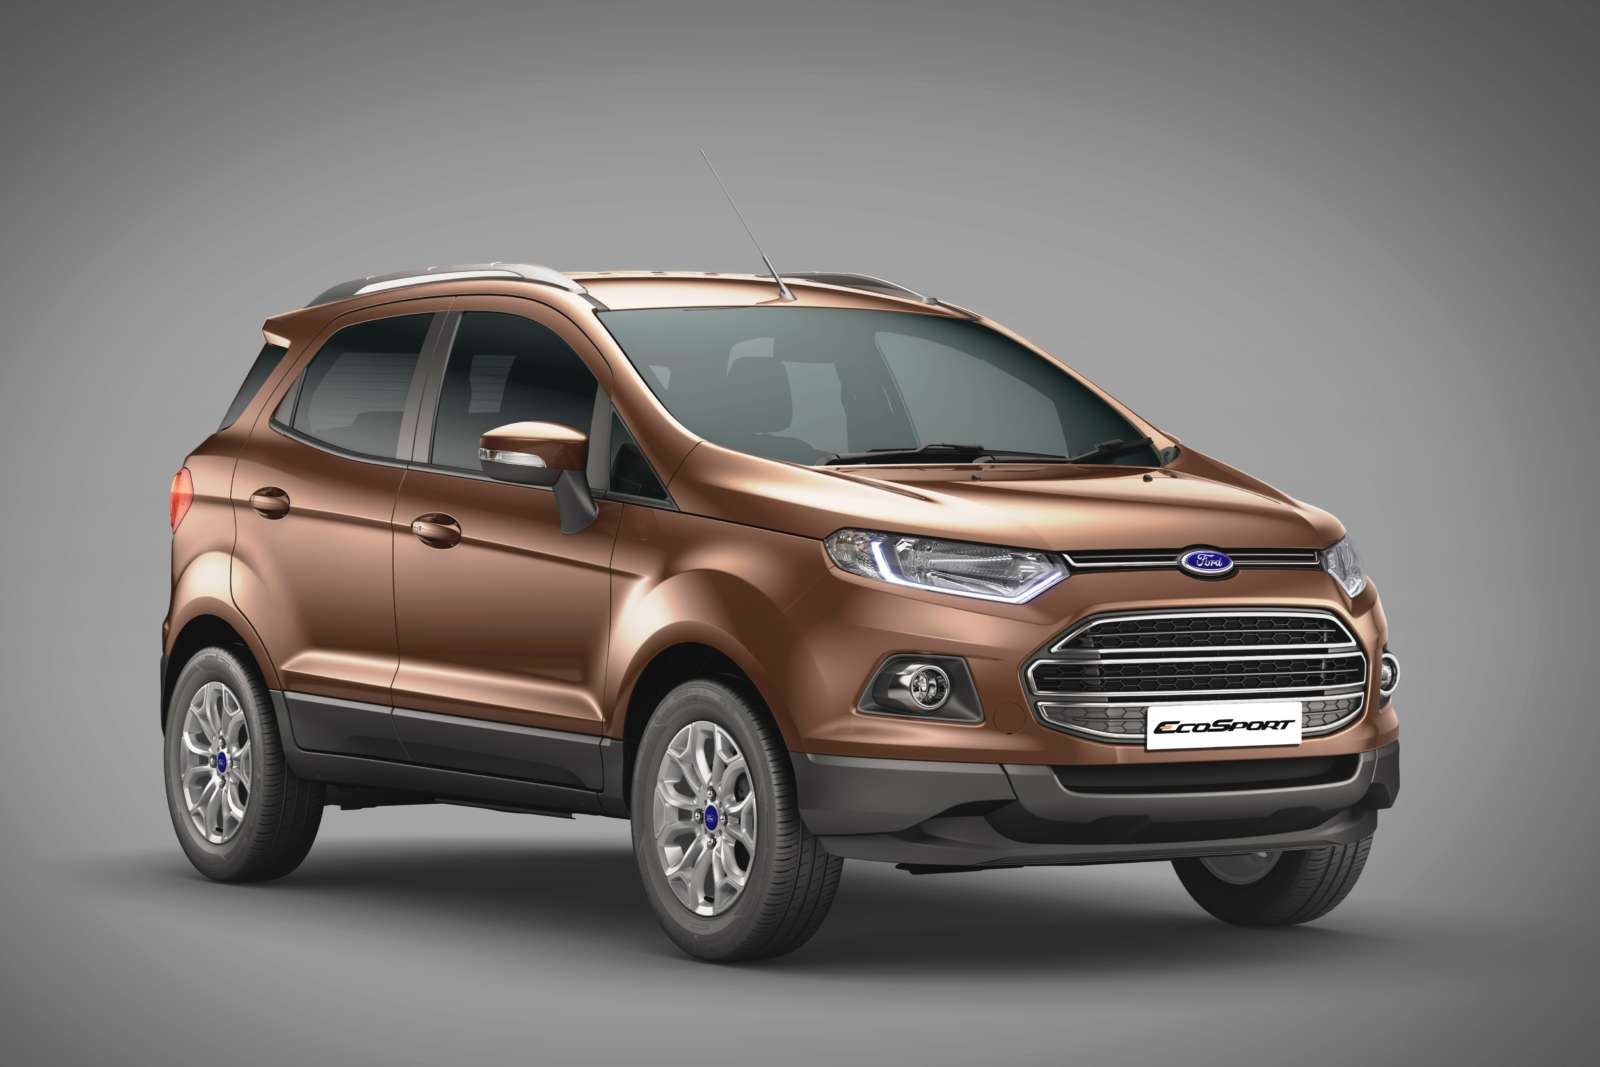 official new ford ecosport launched prices start from inr 679 563 motoroids. Black Bedroom Furniture Sets. Home Design Ideas